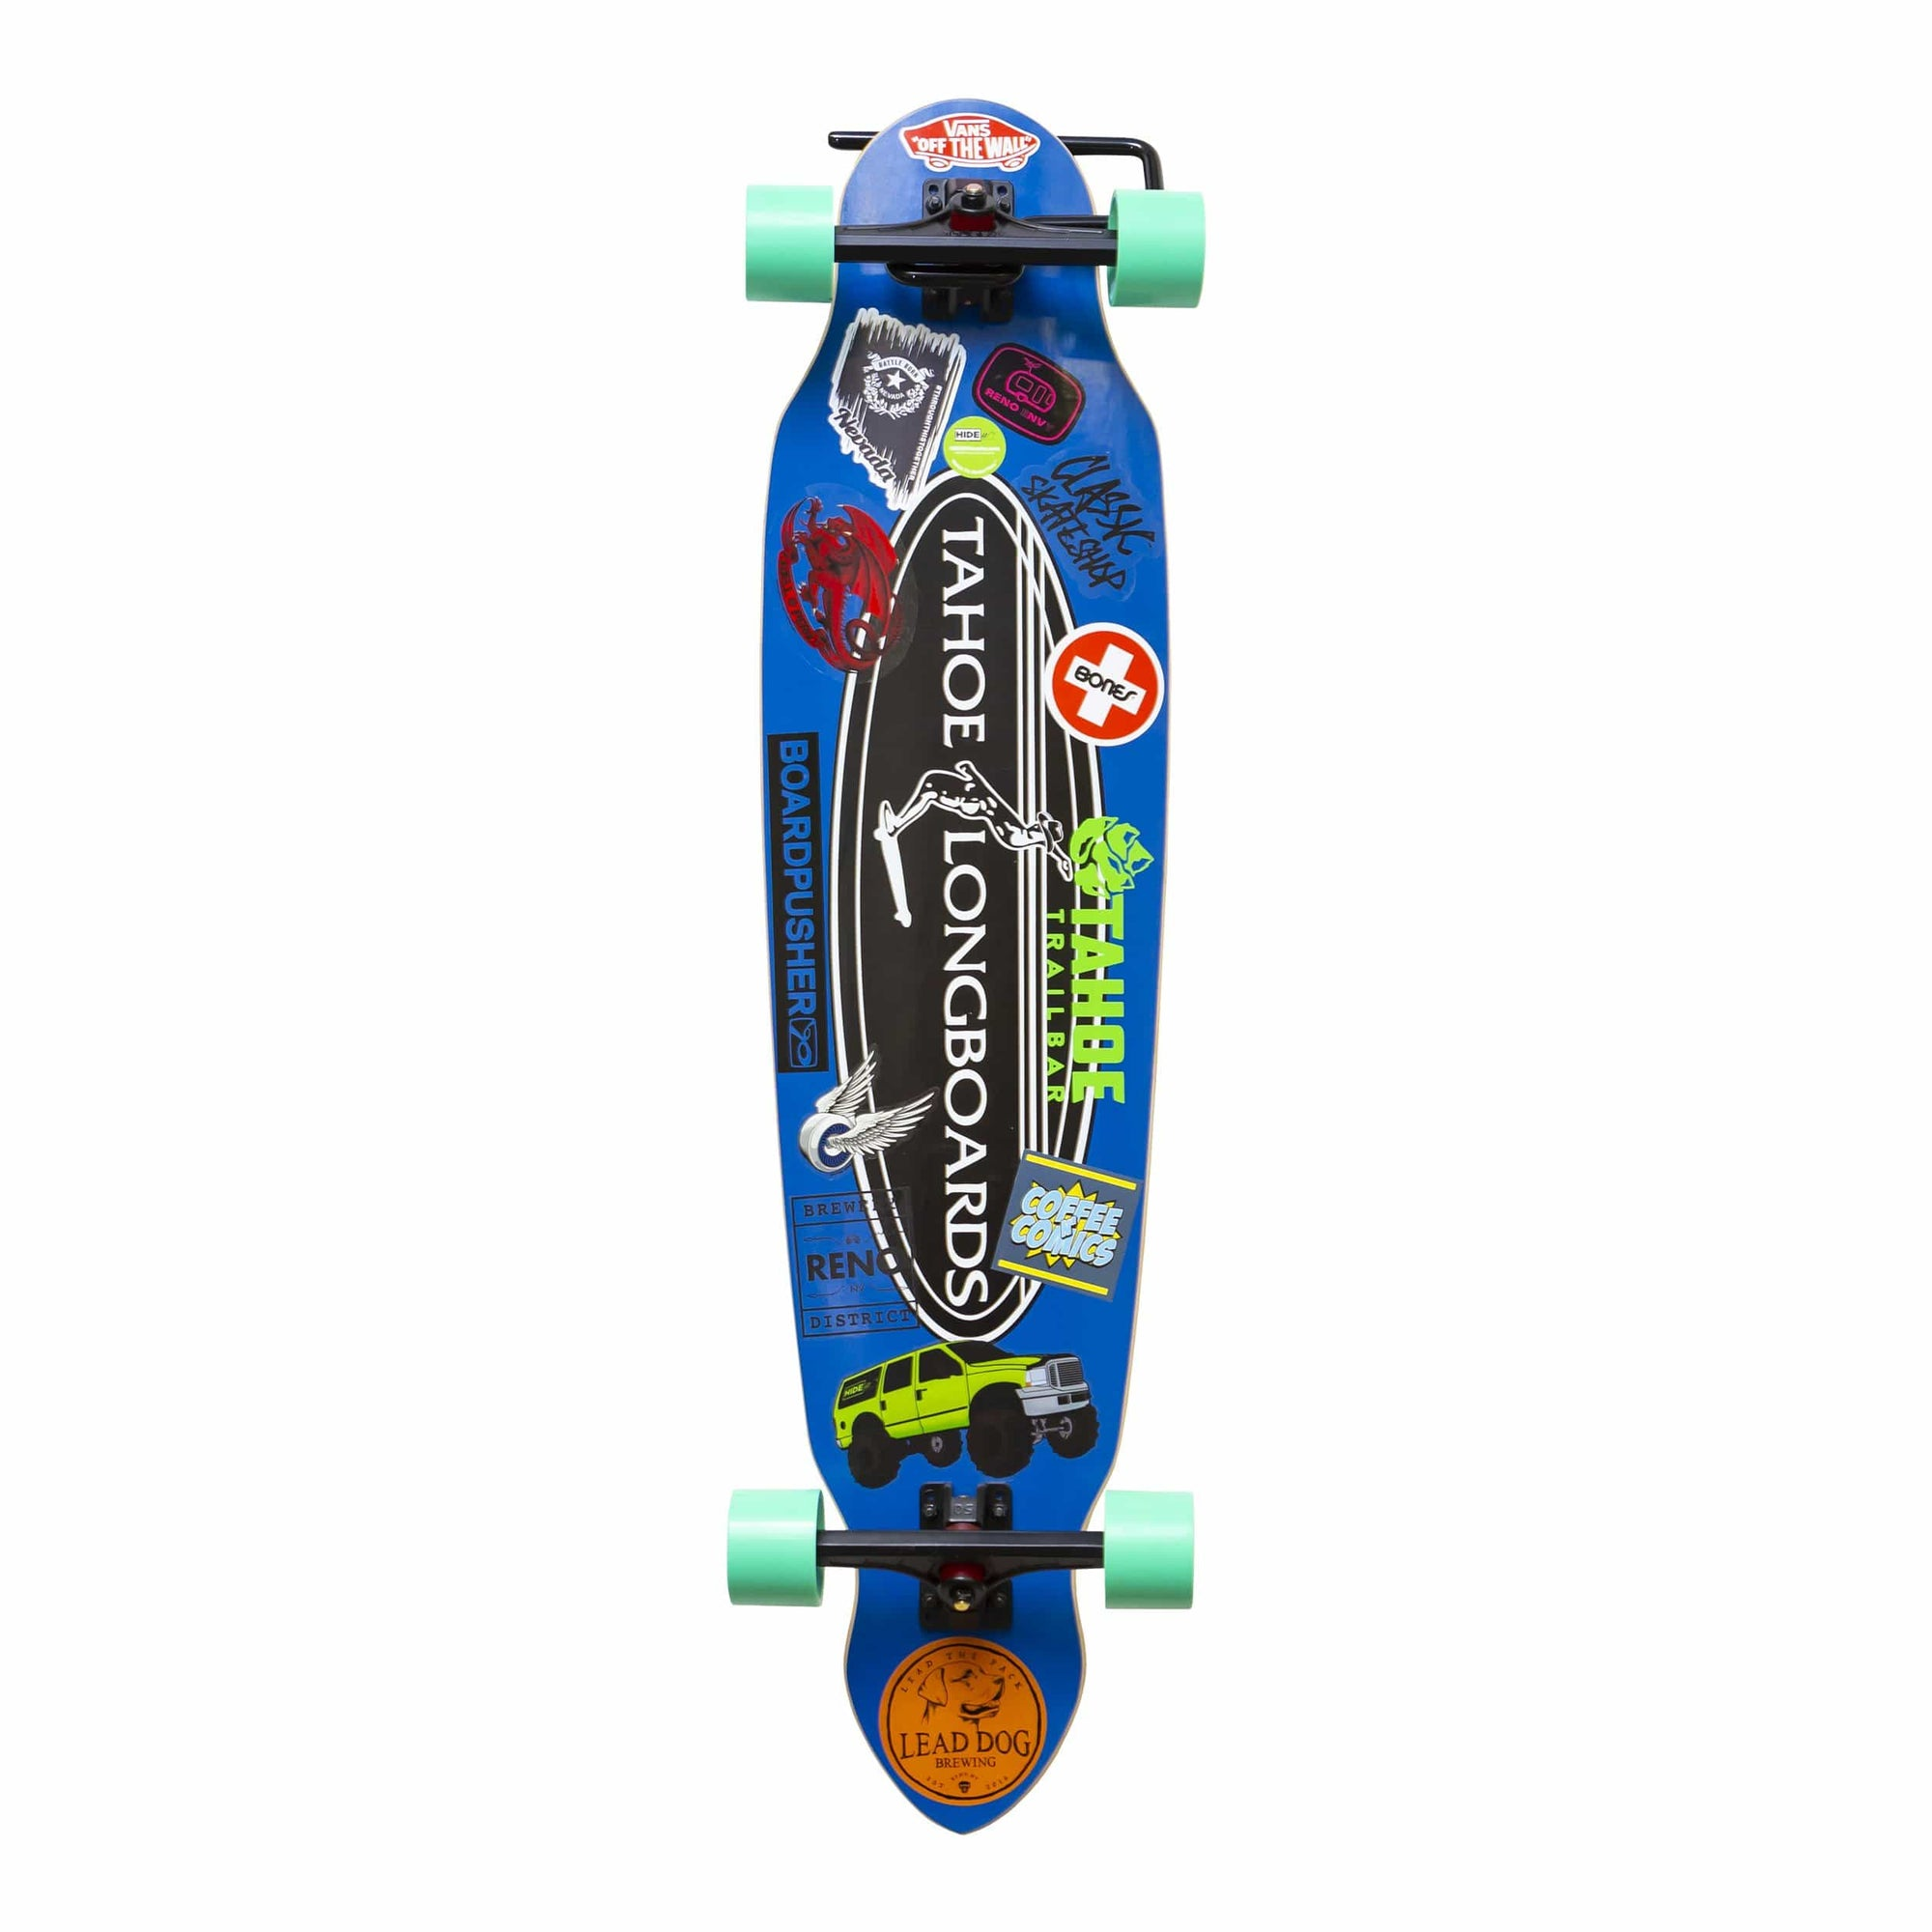 Tahoe longboard wall mounted in the HIDEit Display Skateboard Wall Mount.